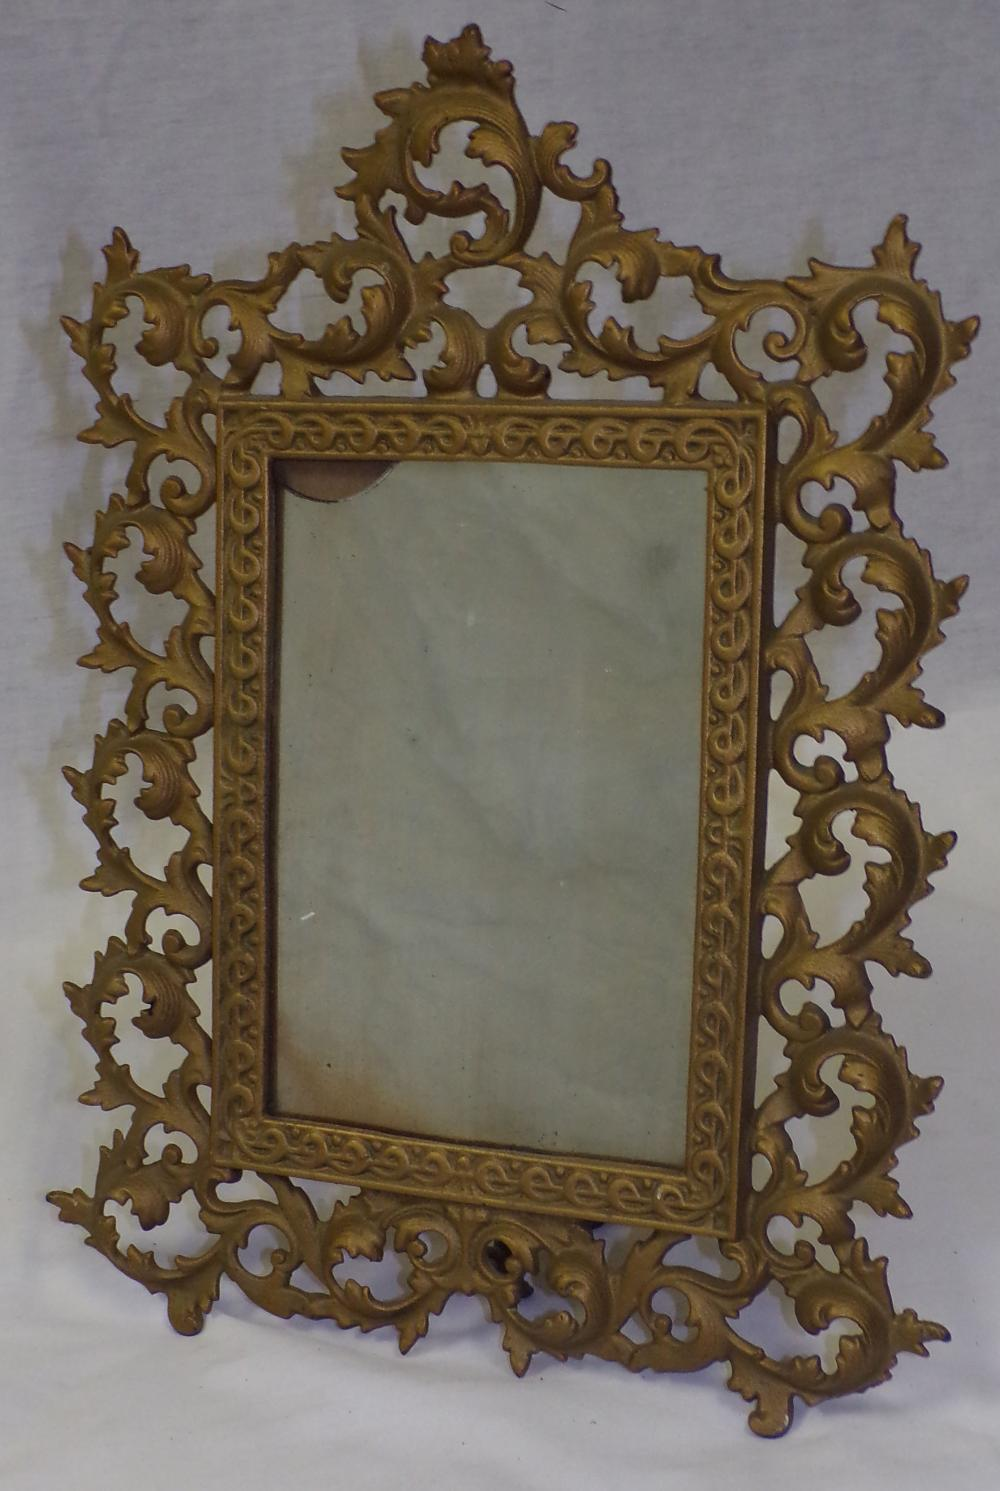 "Ornate iron standing mirror, leaf form design, marked JM32, mirror glass chipped in upper left hand corner,16 ¼ T x 12"" W"